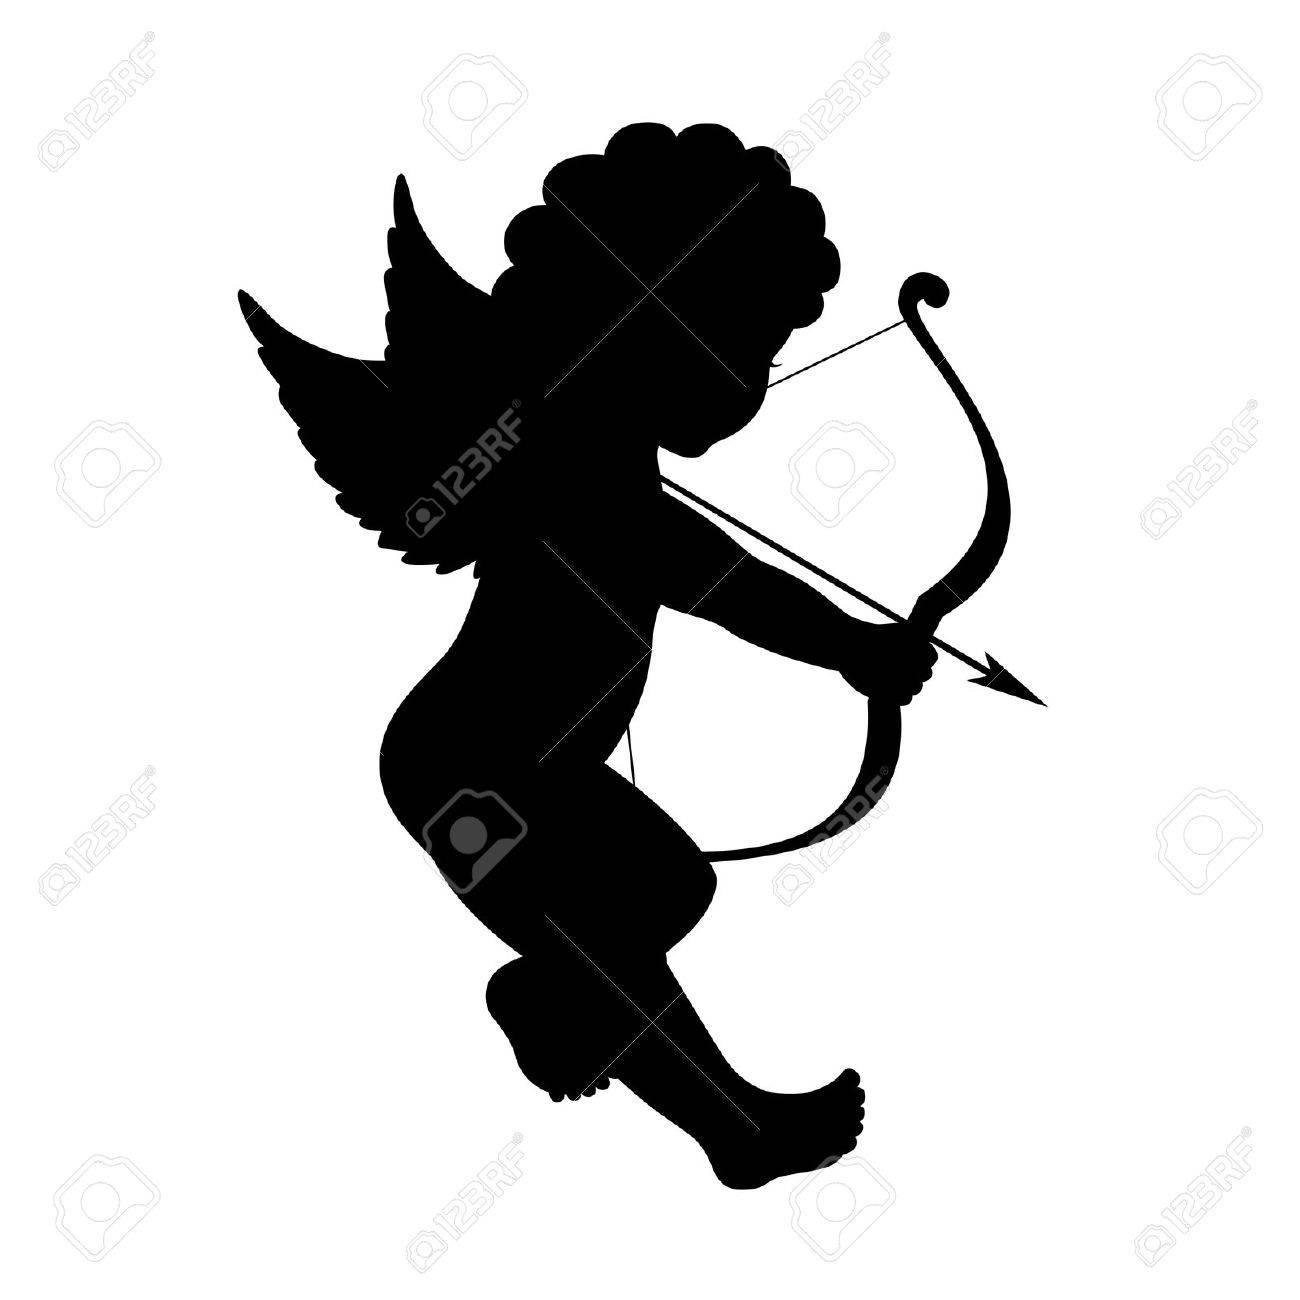 hight resolution of 1300x1300 black vector silhouette of a cupid shooting arrow royalty free